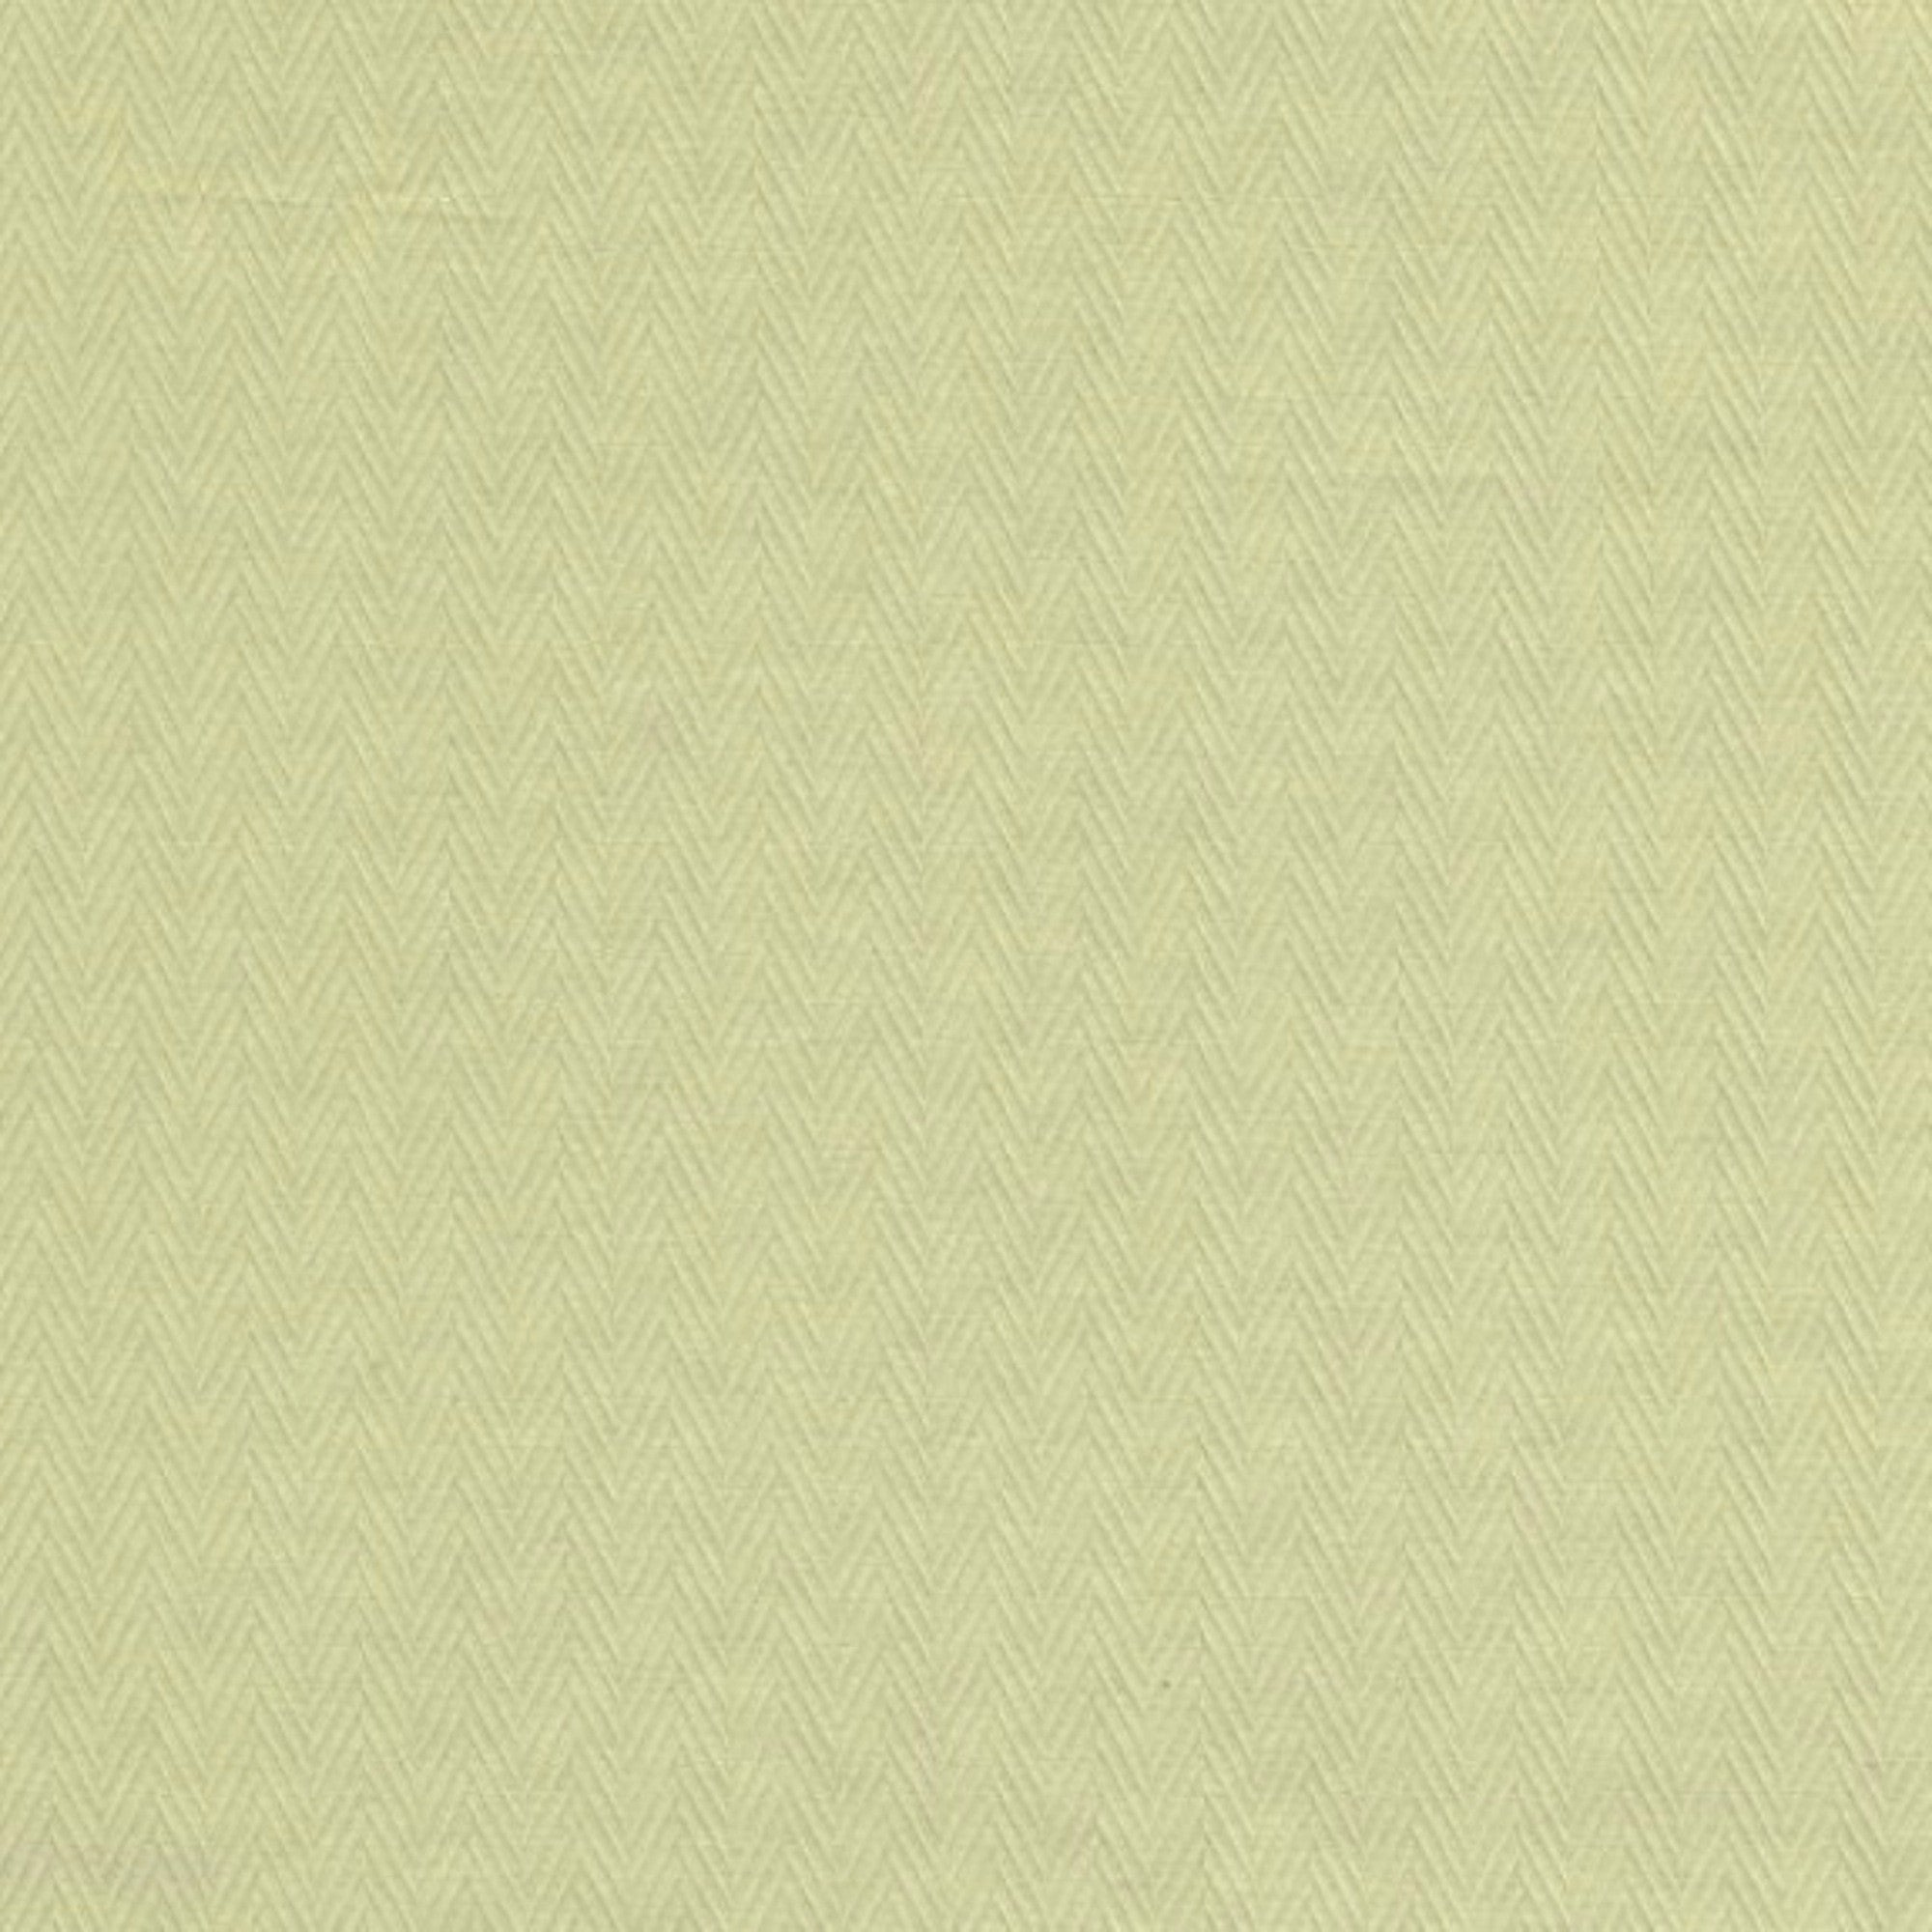 Solid Cotton - Celery Herringbone Fabric